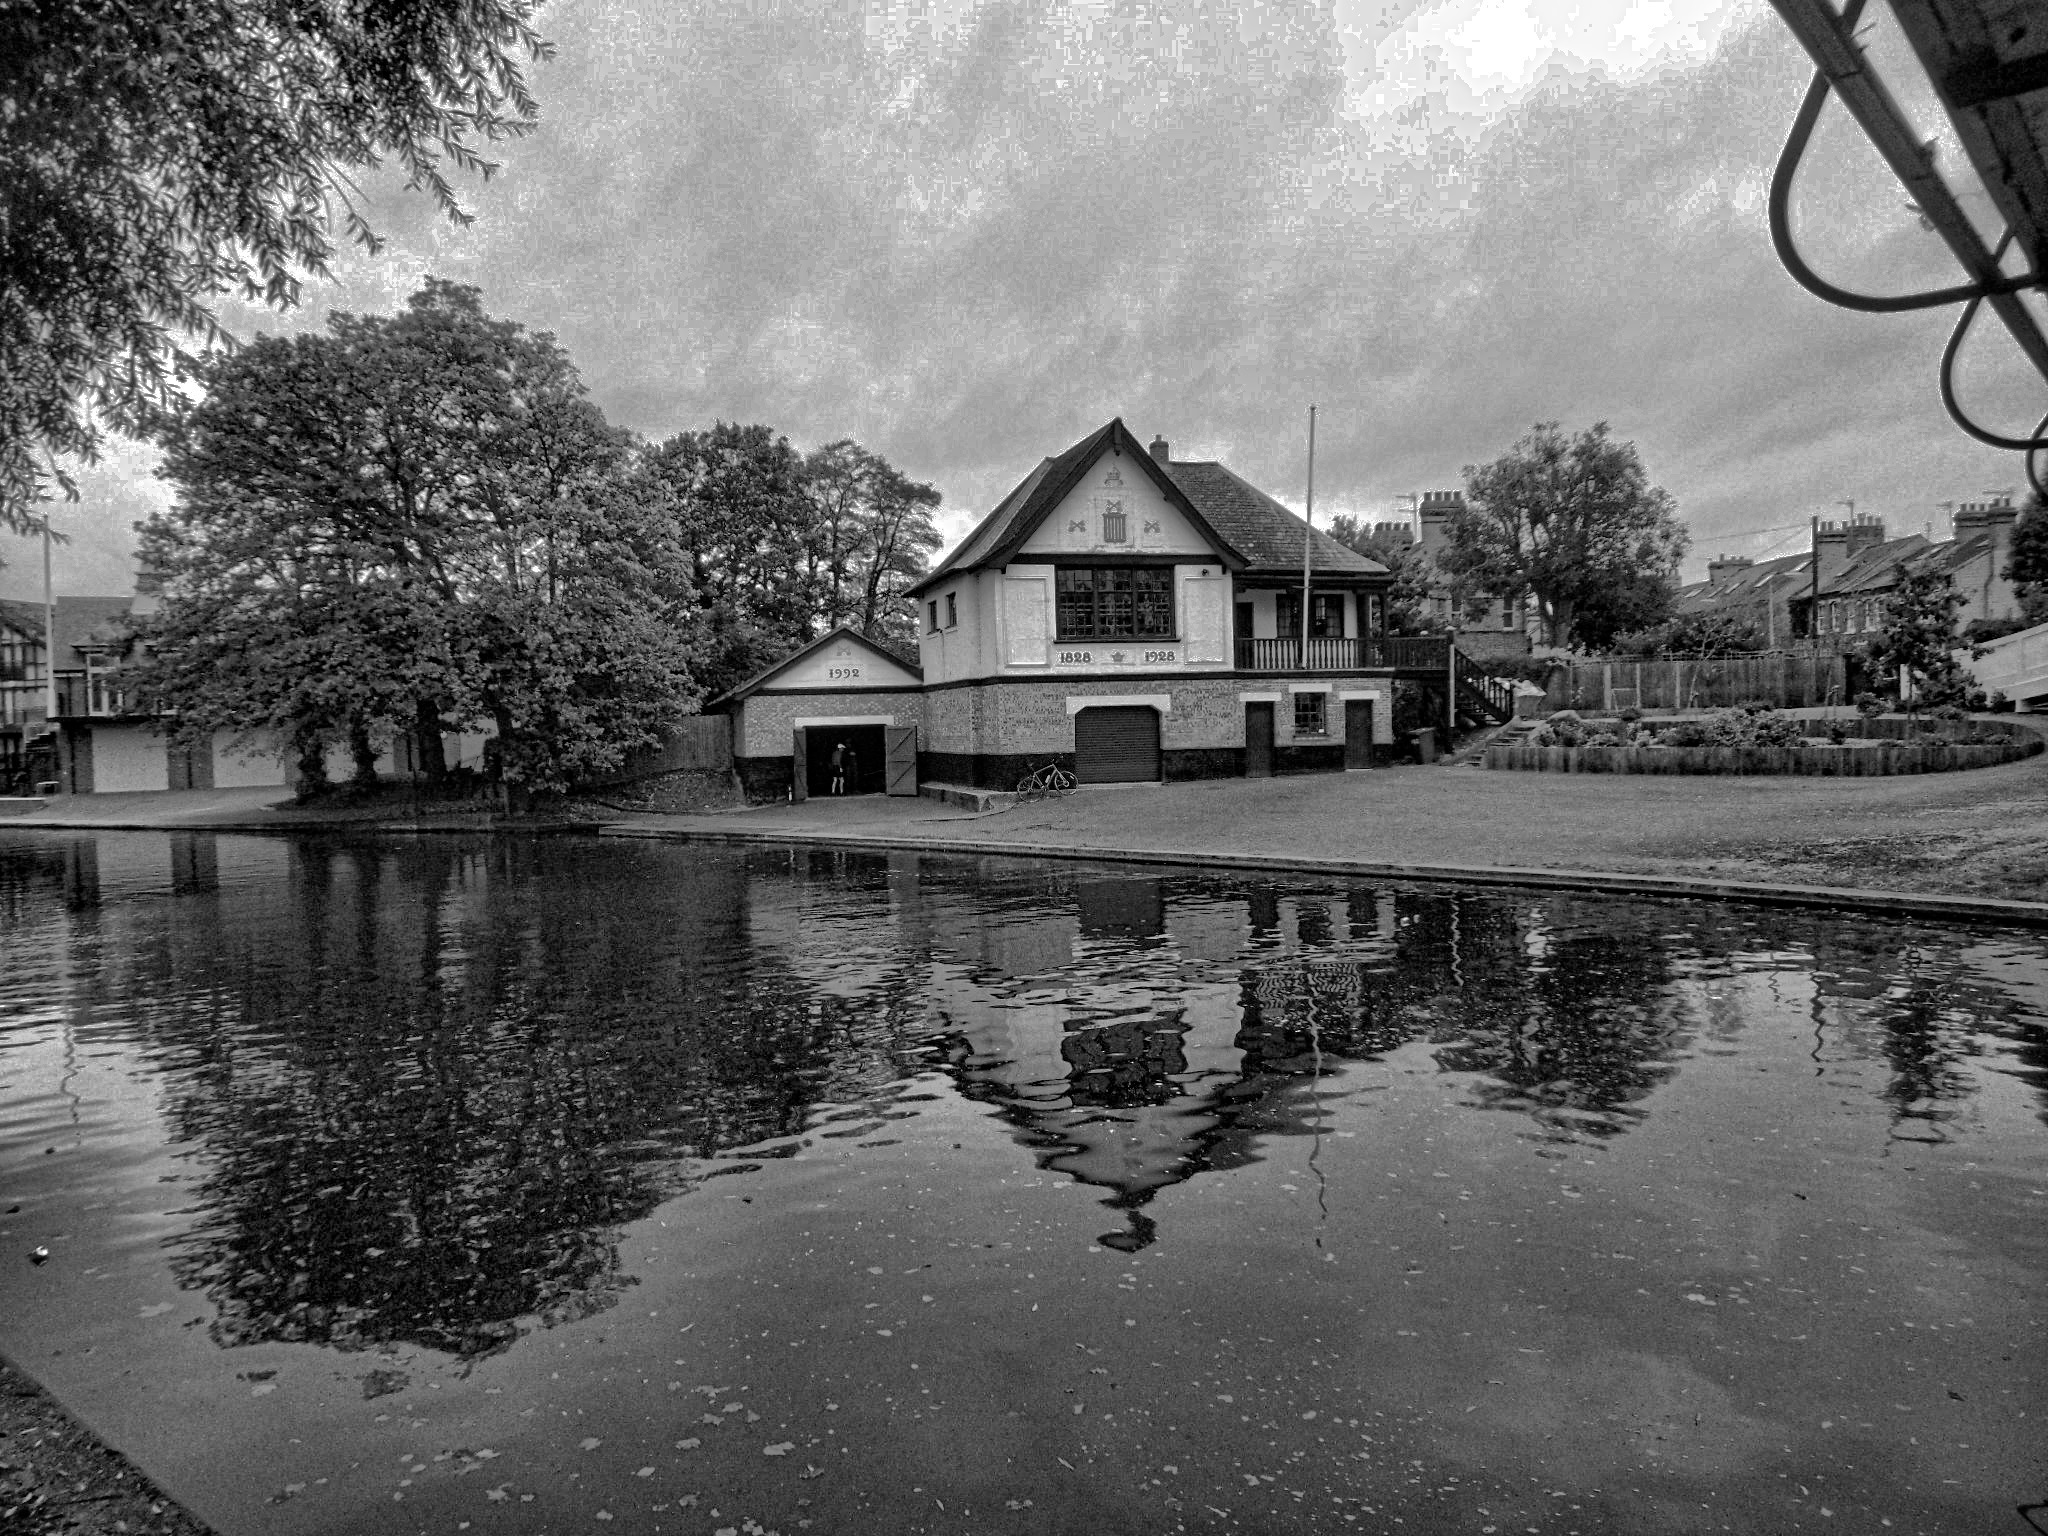 The Boathouse by Simon Hill